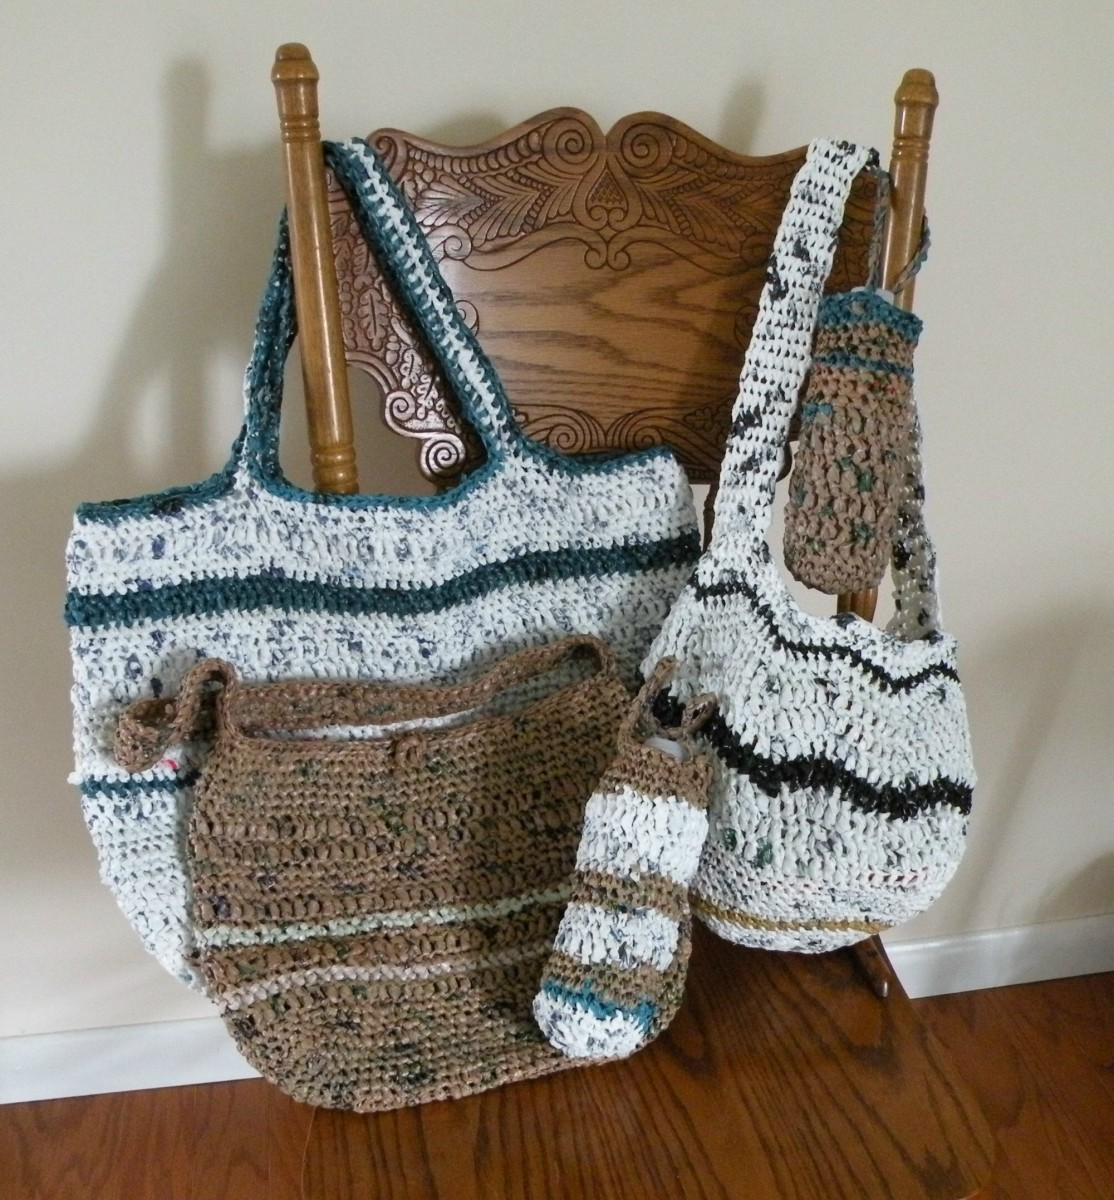 Crochet Fun Beach Bags and Totes From Recycled Plastic Bags